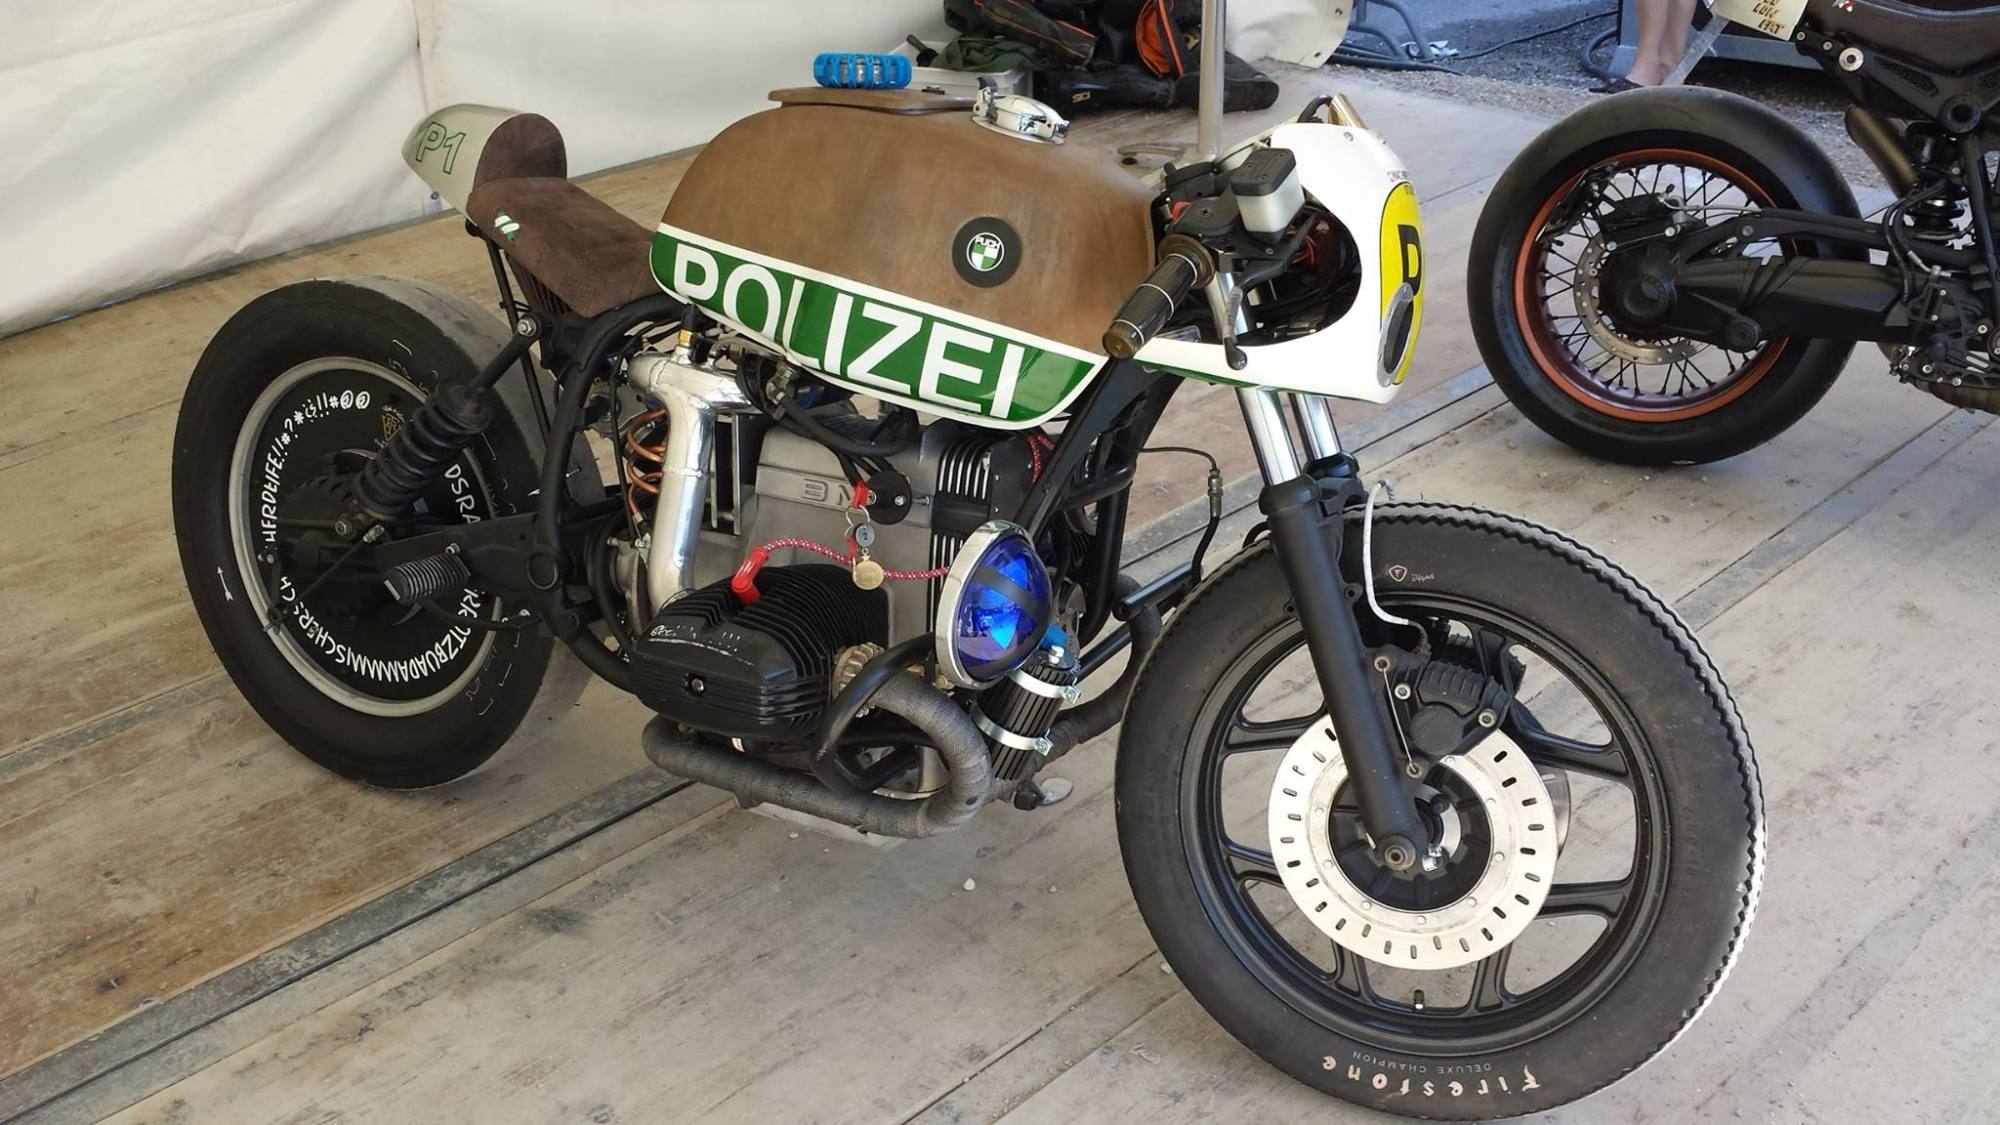 hight resolution of bmw makes the bikes that are the most sought after by police departments around the world quick compact and fuel efficient bmw motorcycles fit nearly